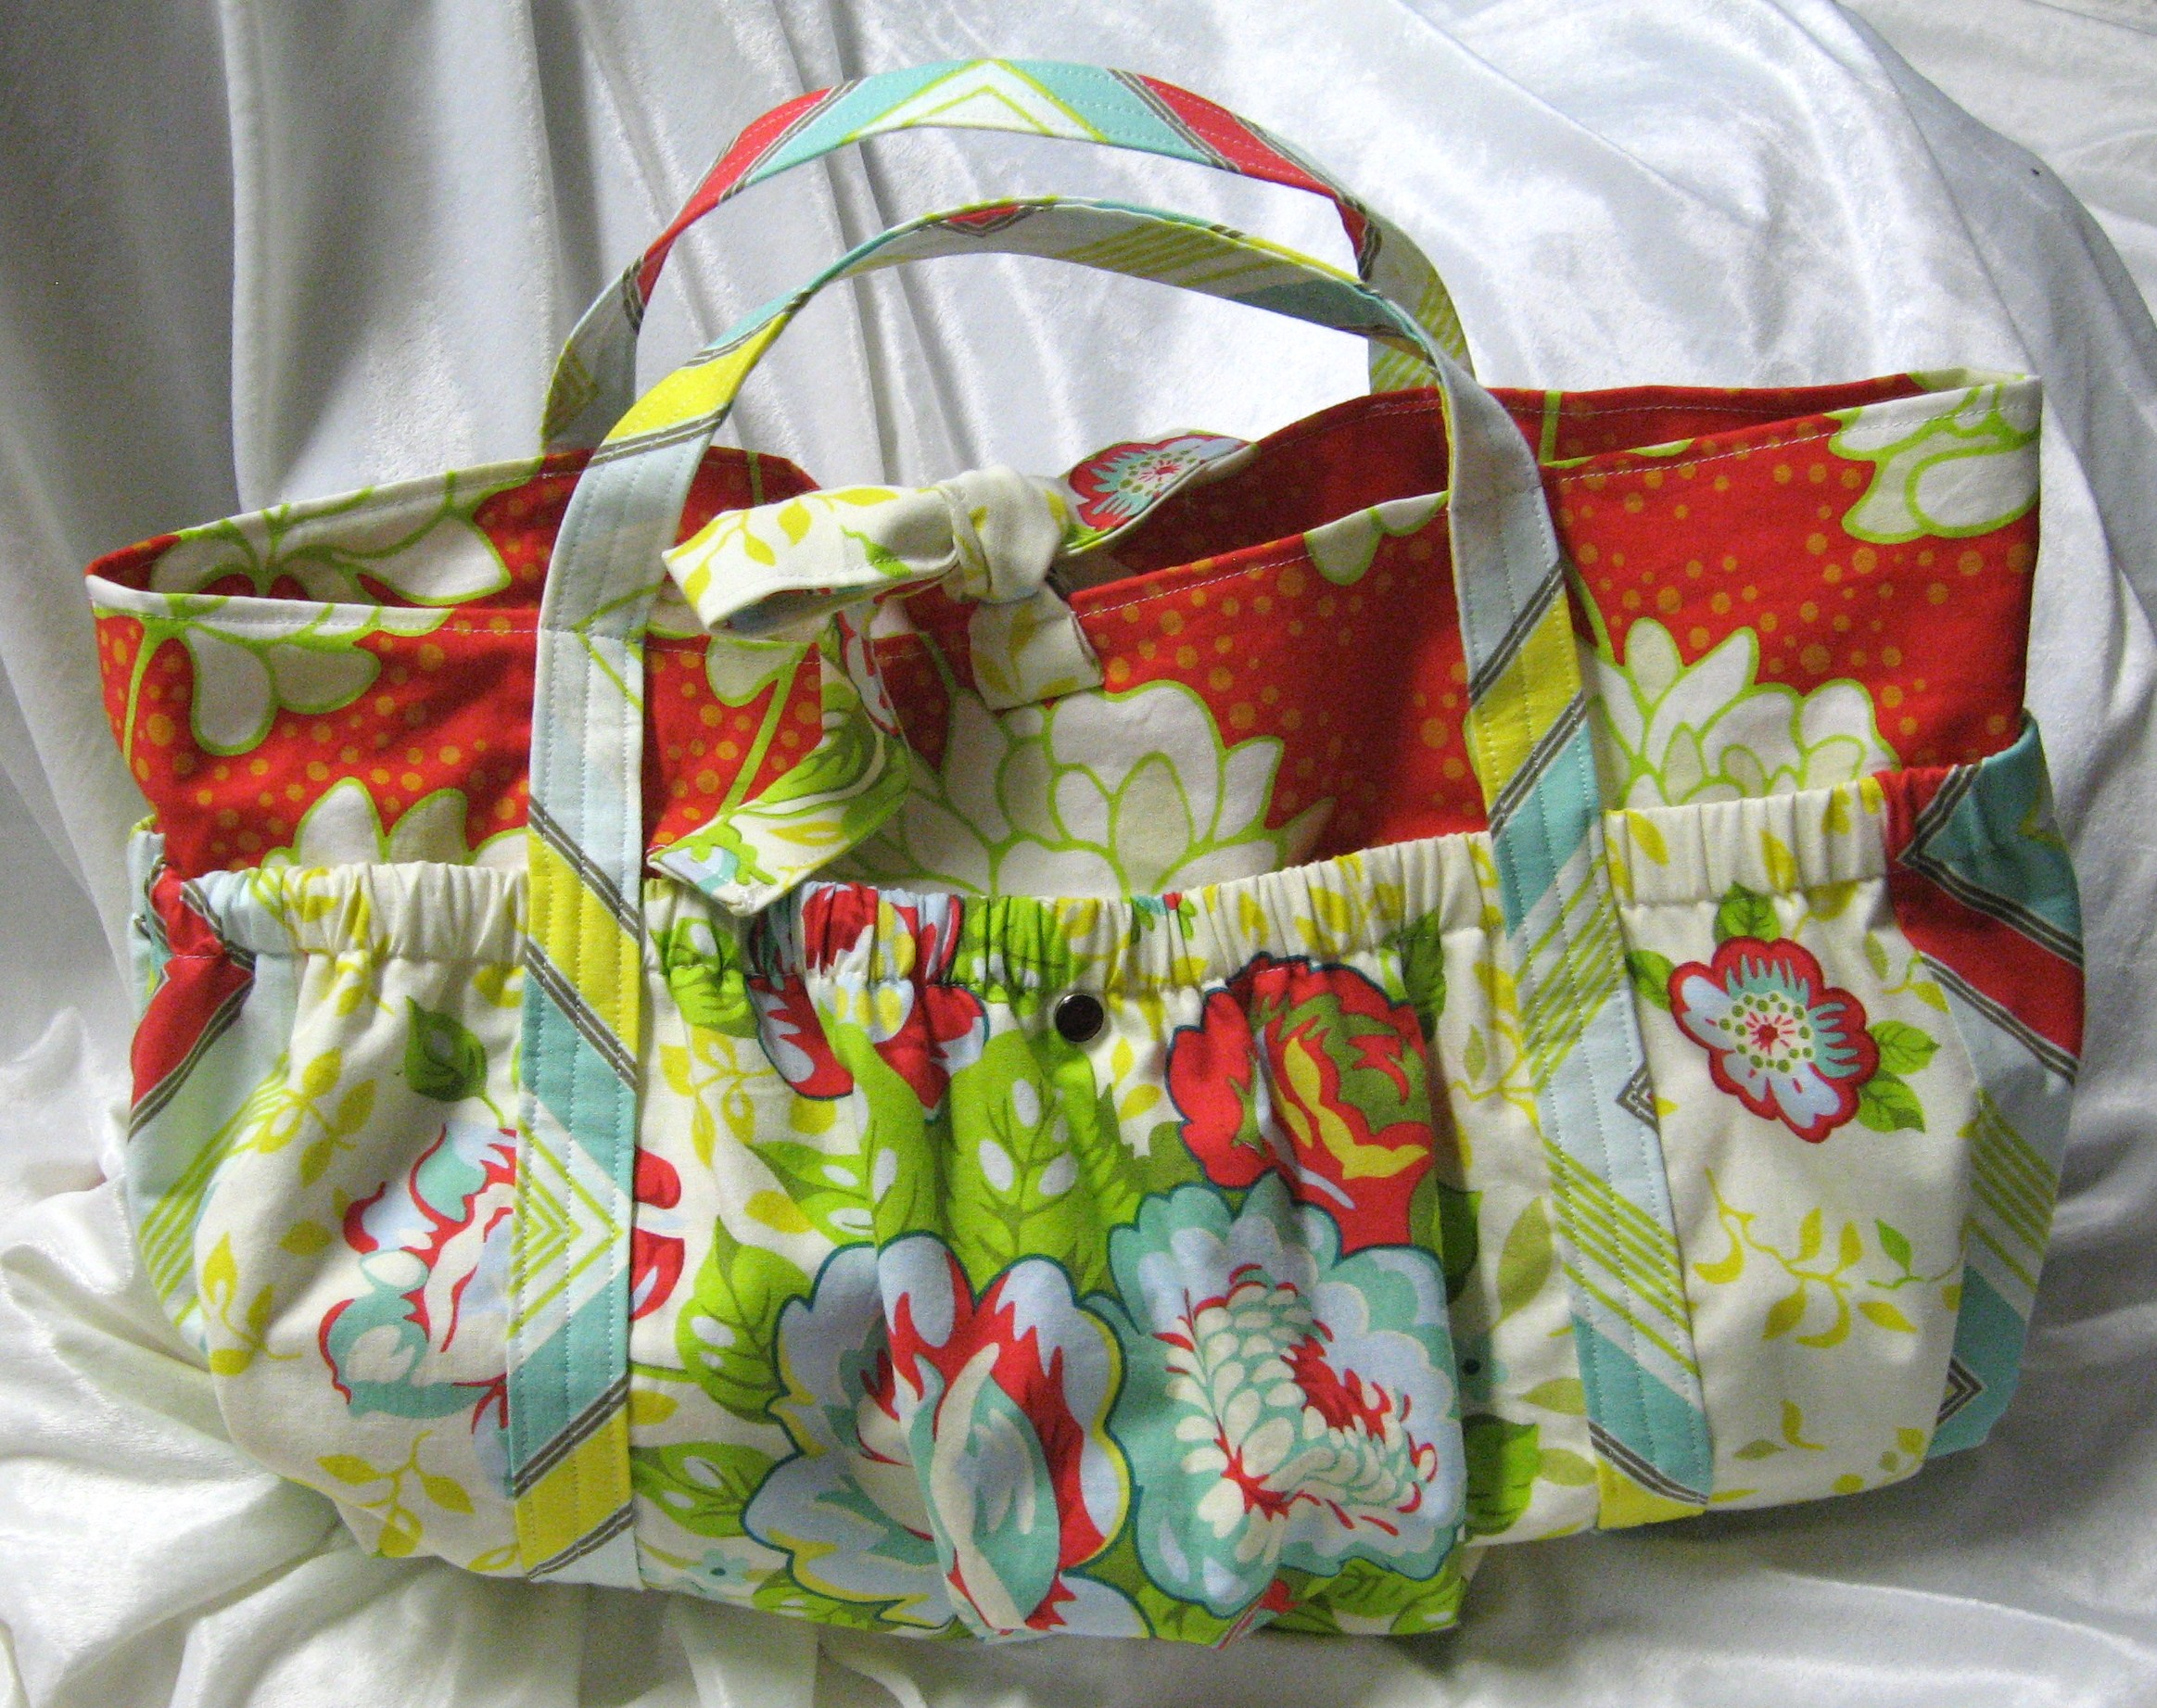 Puffy pockets tote diaper bag pattern sewing projects puffy pockets tote diaper bag pattern sewing projects burdastyle jeuxipadfo Gallery